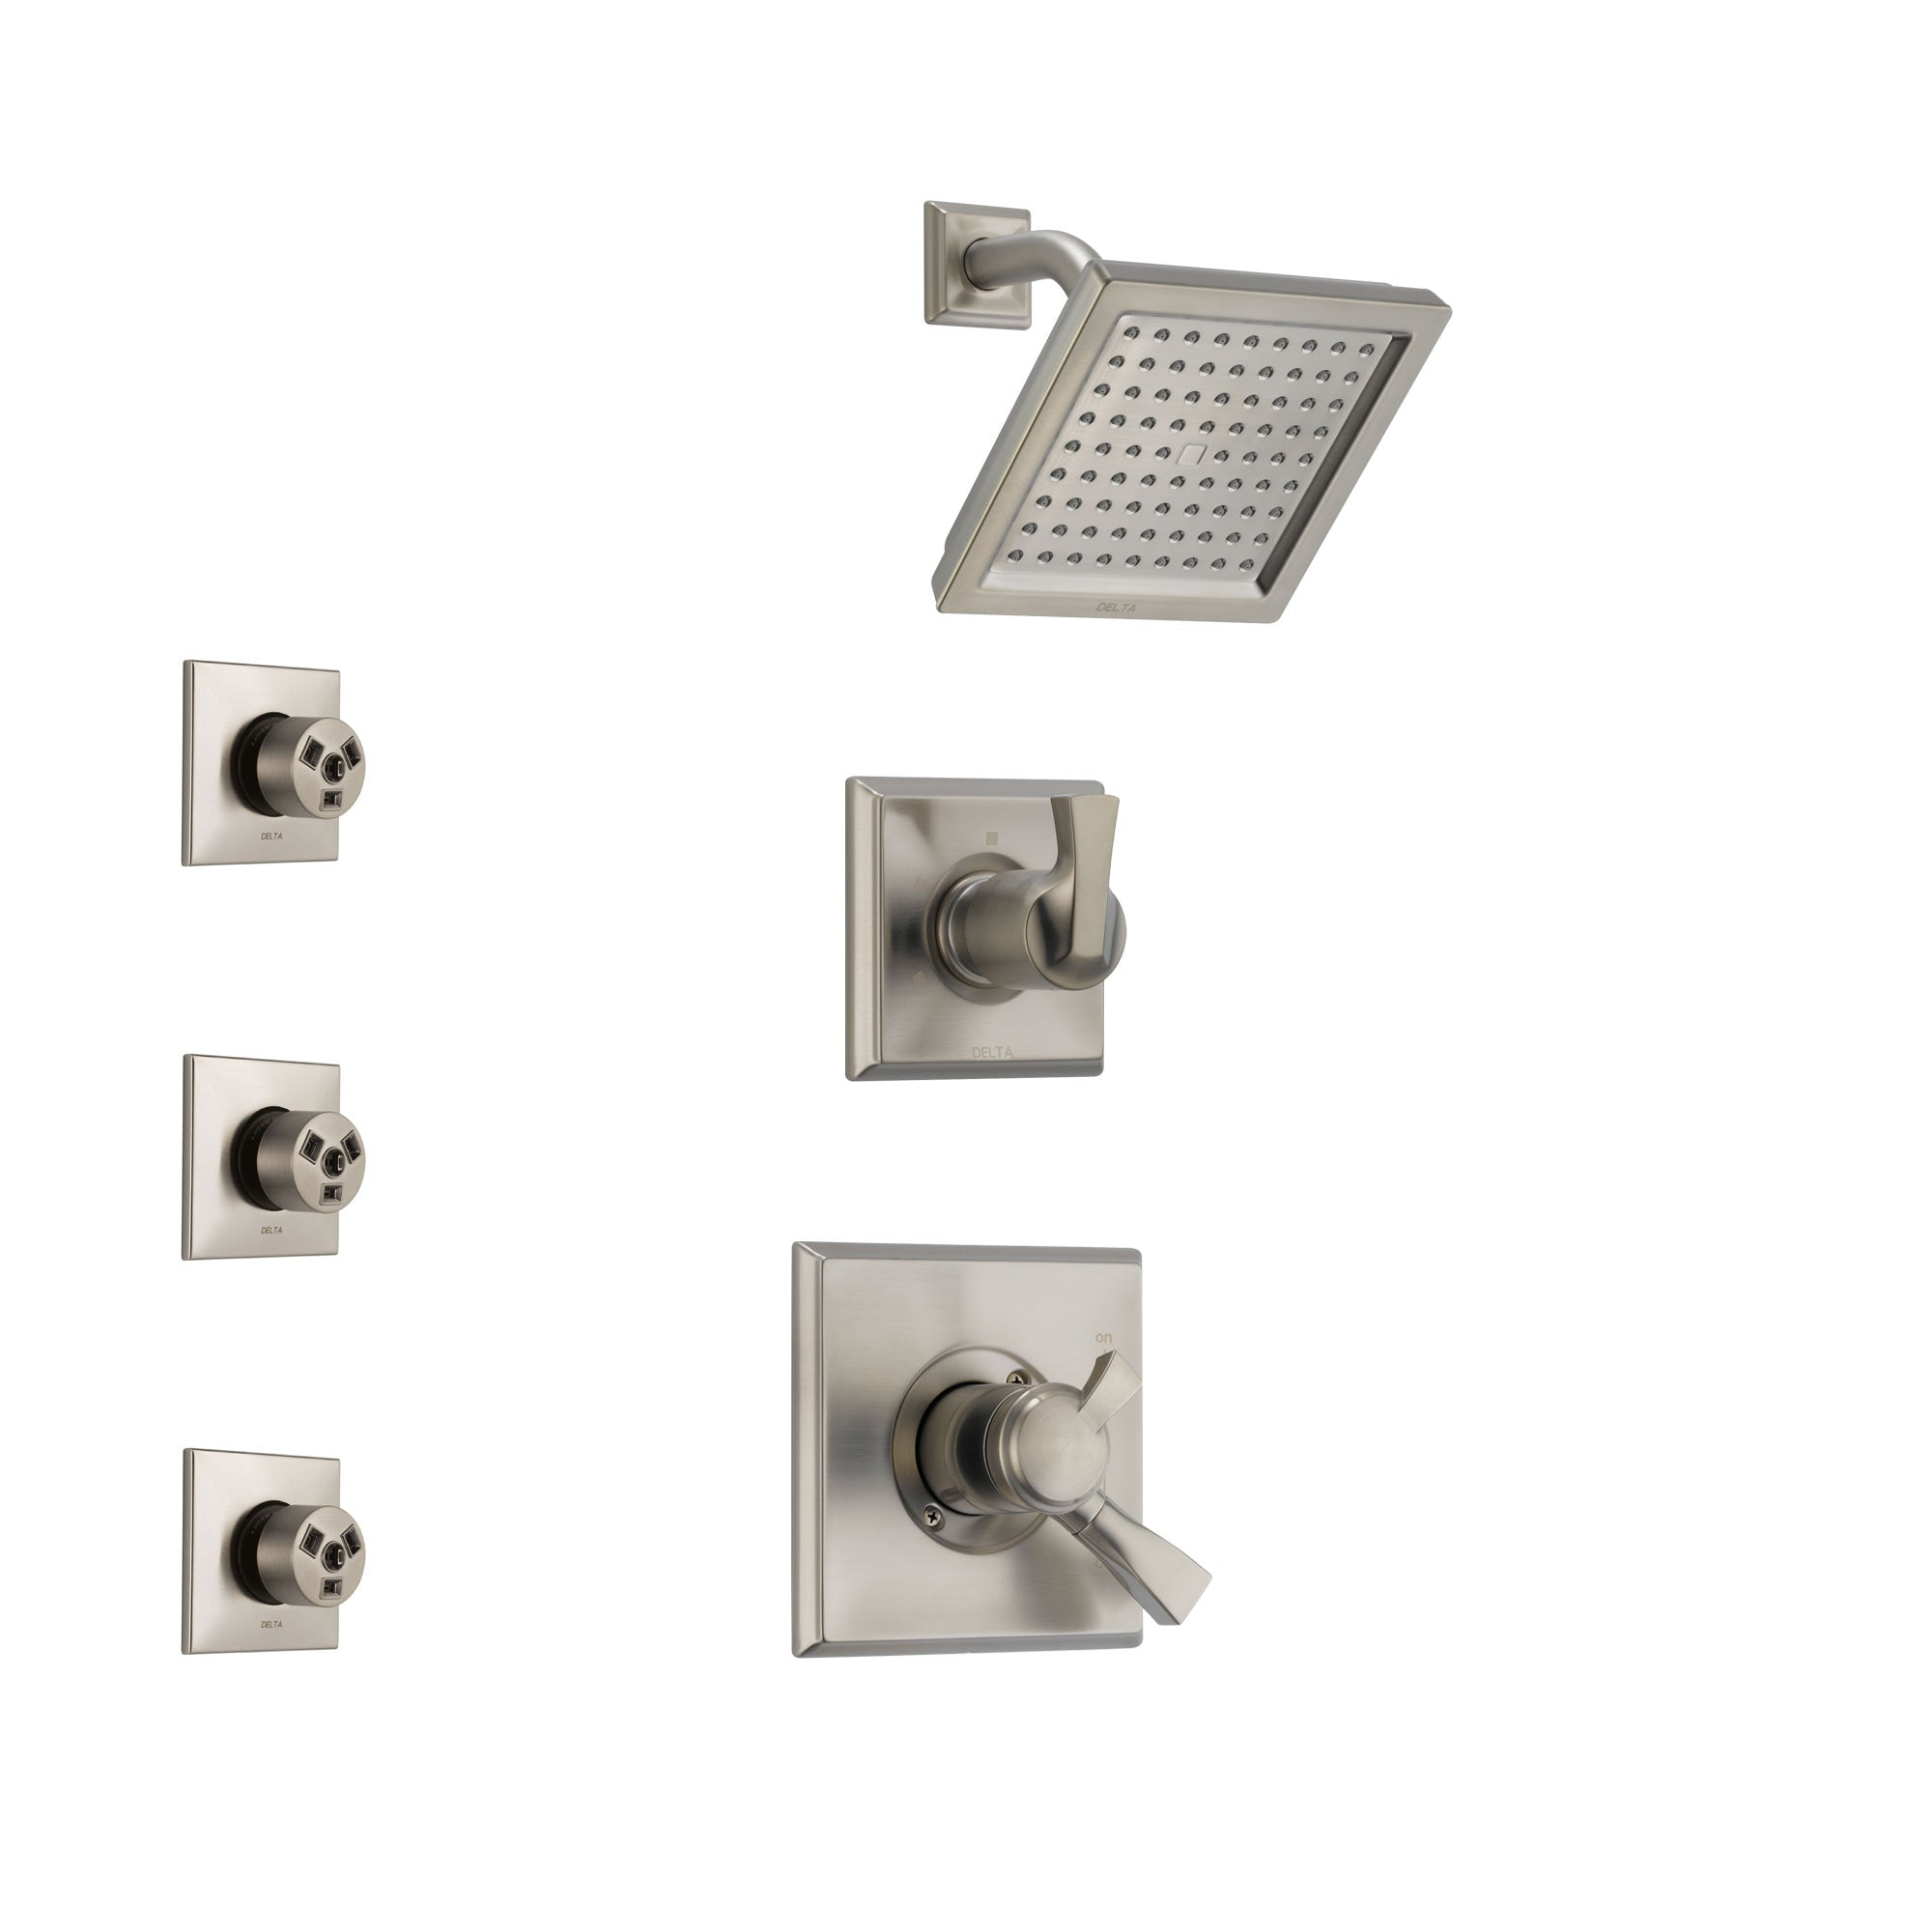 Delta Dryden Stainless Steel Finish Shower System with Dual Control Handle, 3-Setting Diverter, Showerhead, and 3 Body Sprays SS172511SS1